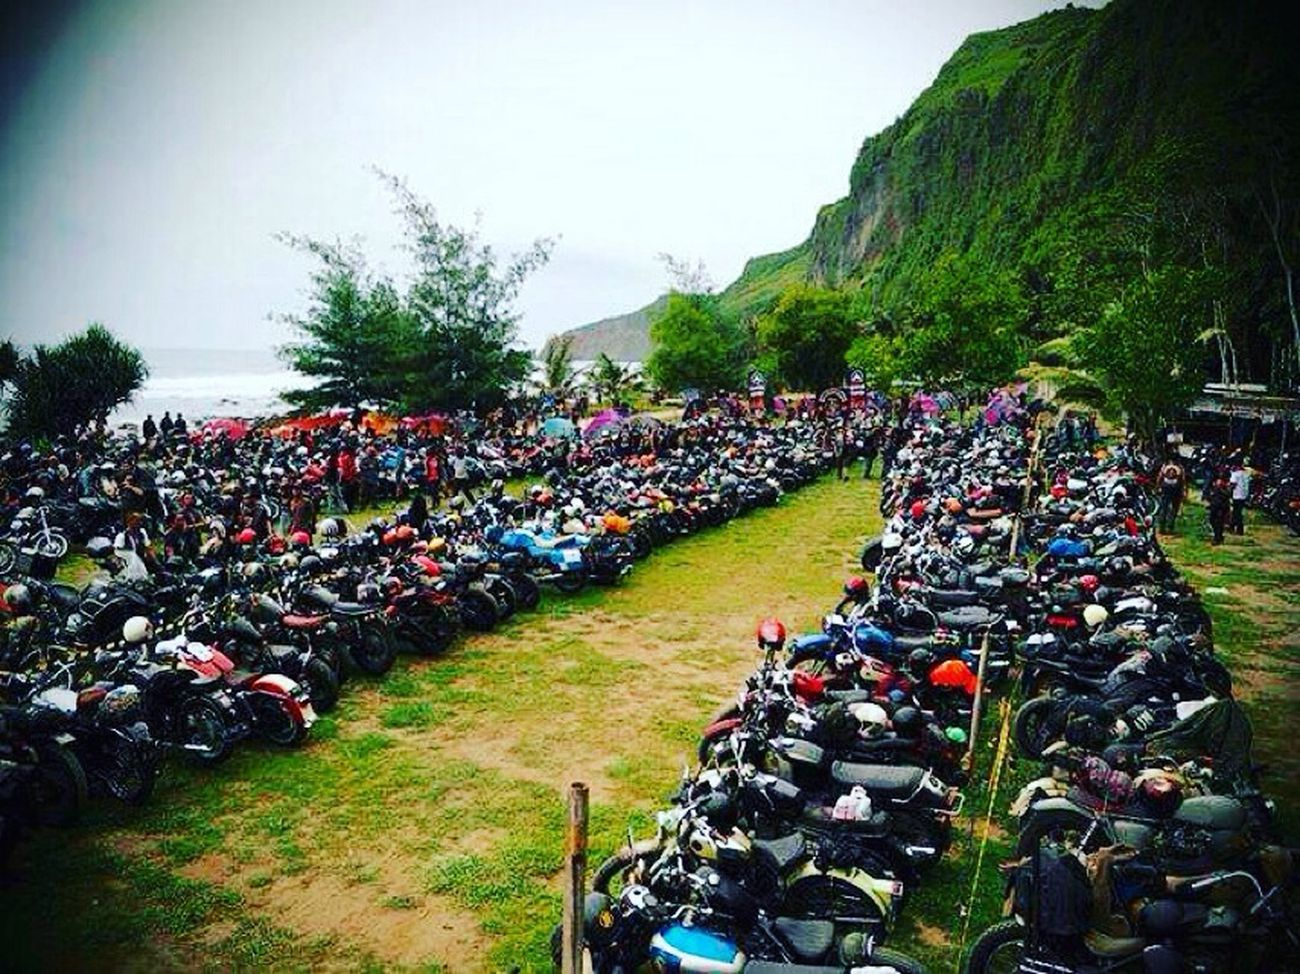 Hanging Out Hello World Sacred Run Bikers Brotherhood Mc Bikers Brotherhood Mc INDONESIA Enjoying Life Menganti Beach Classic Motorcycles Harleydavidson Birmingham Small Arms